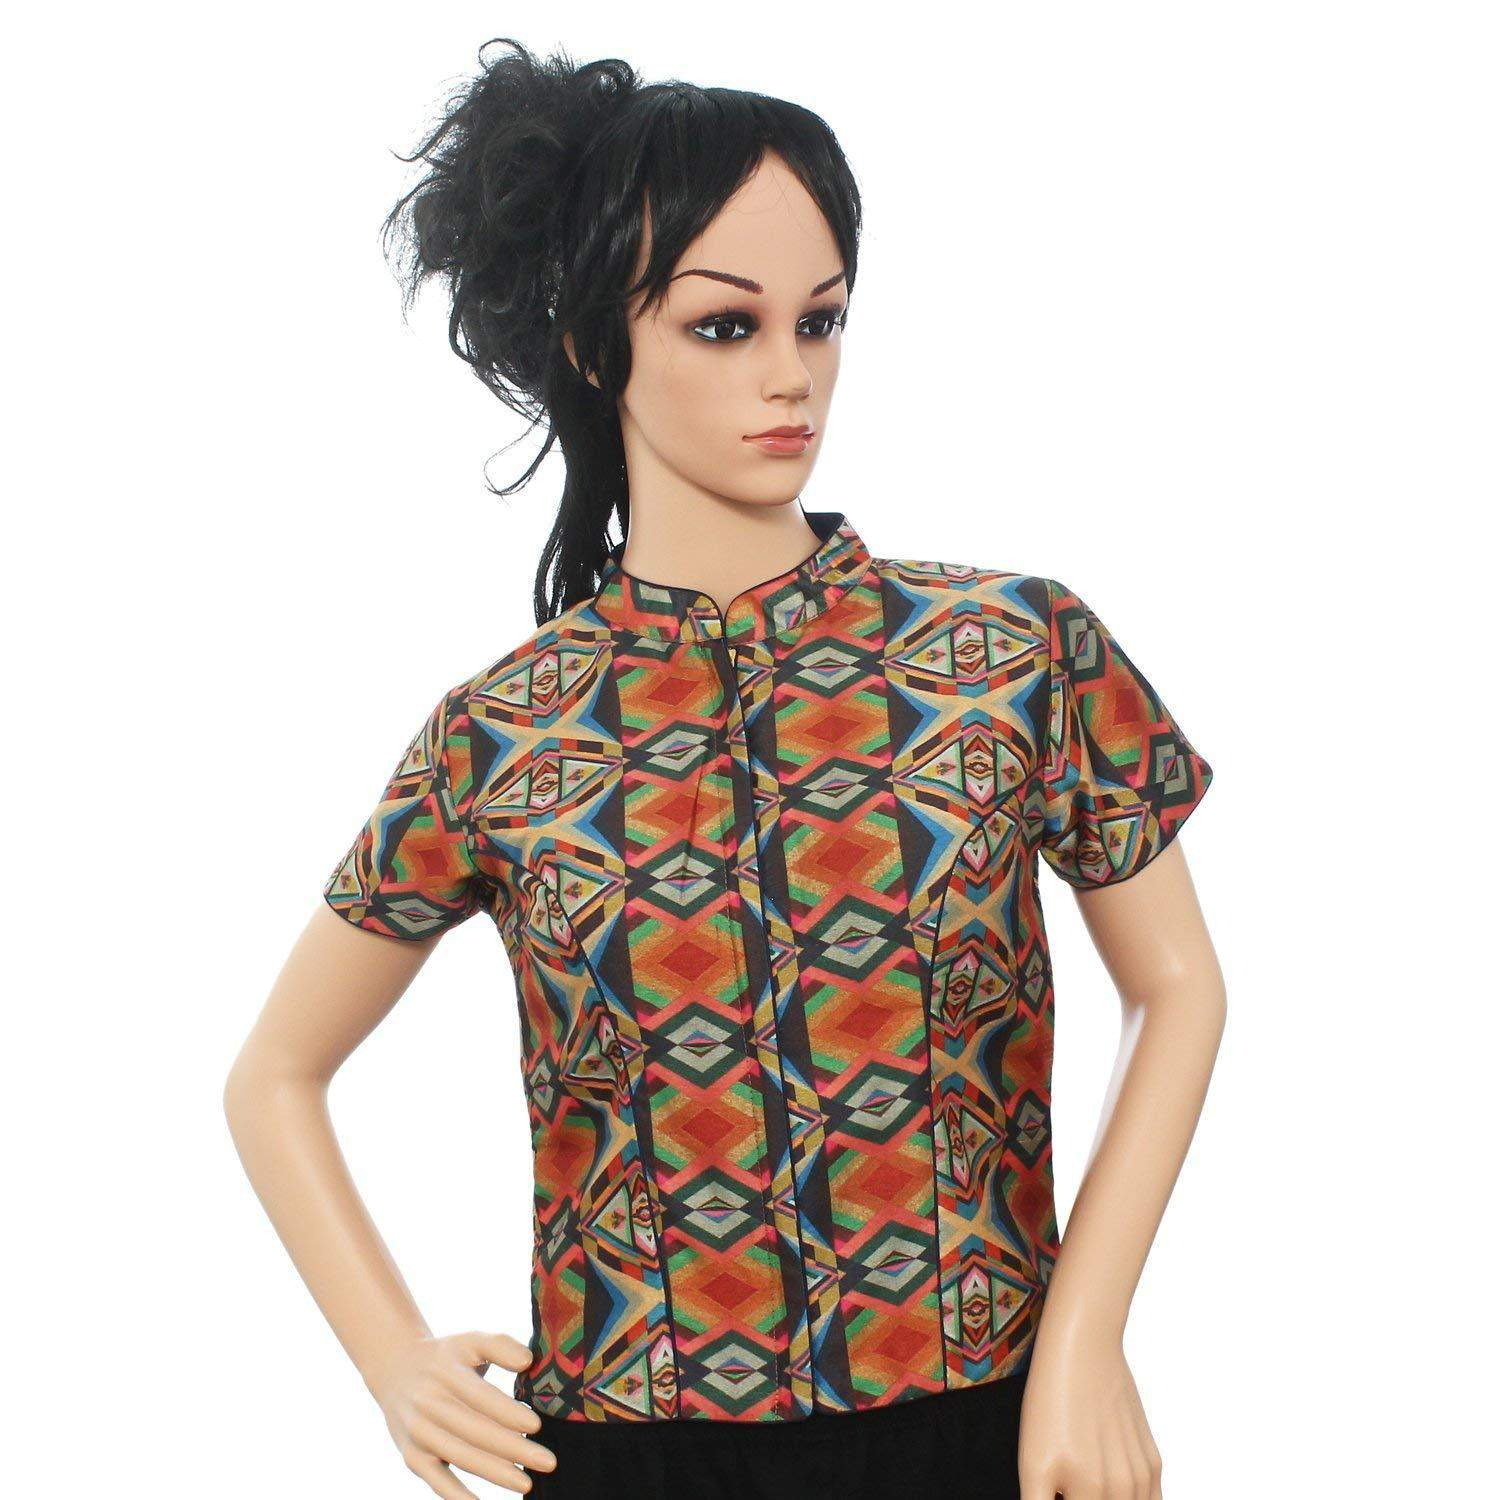 Readymade Printed Padded Designer Saree Blouse (Multi color) - Bagaholics Gift